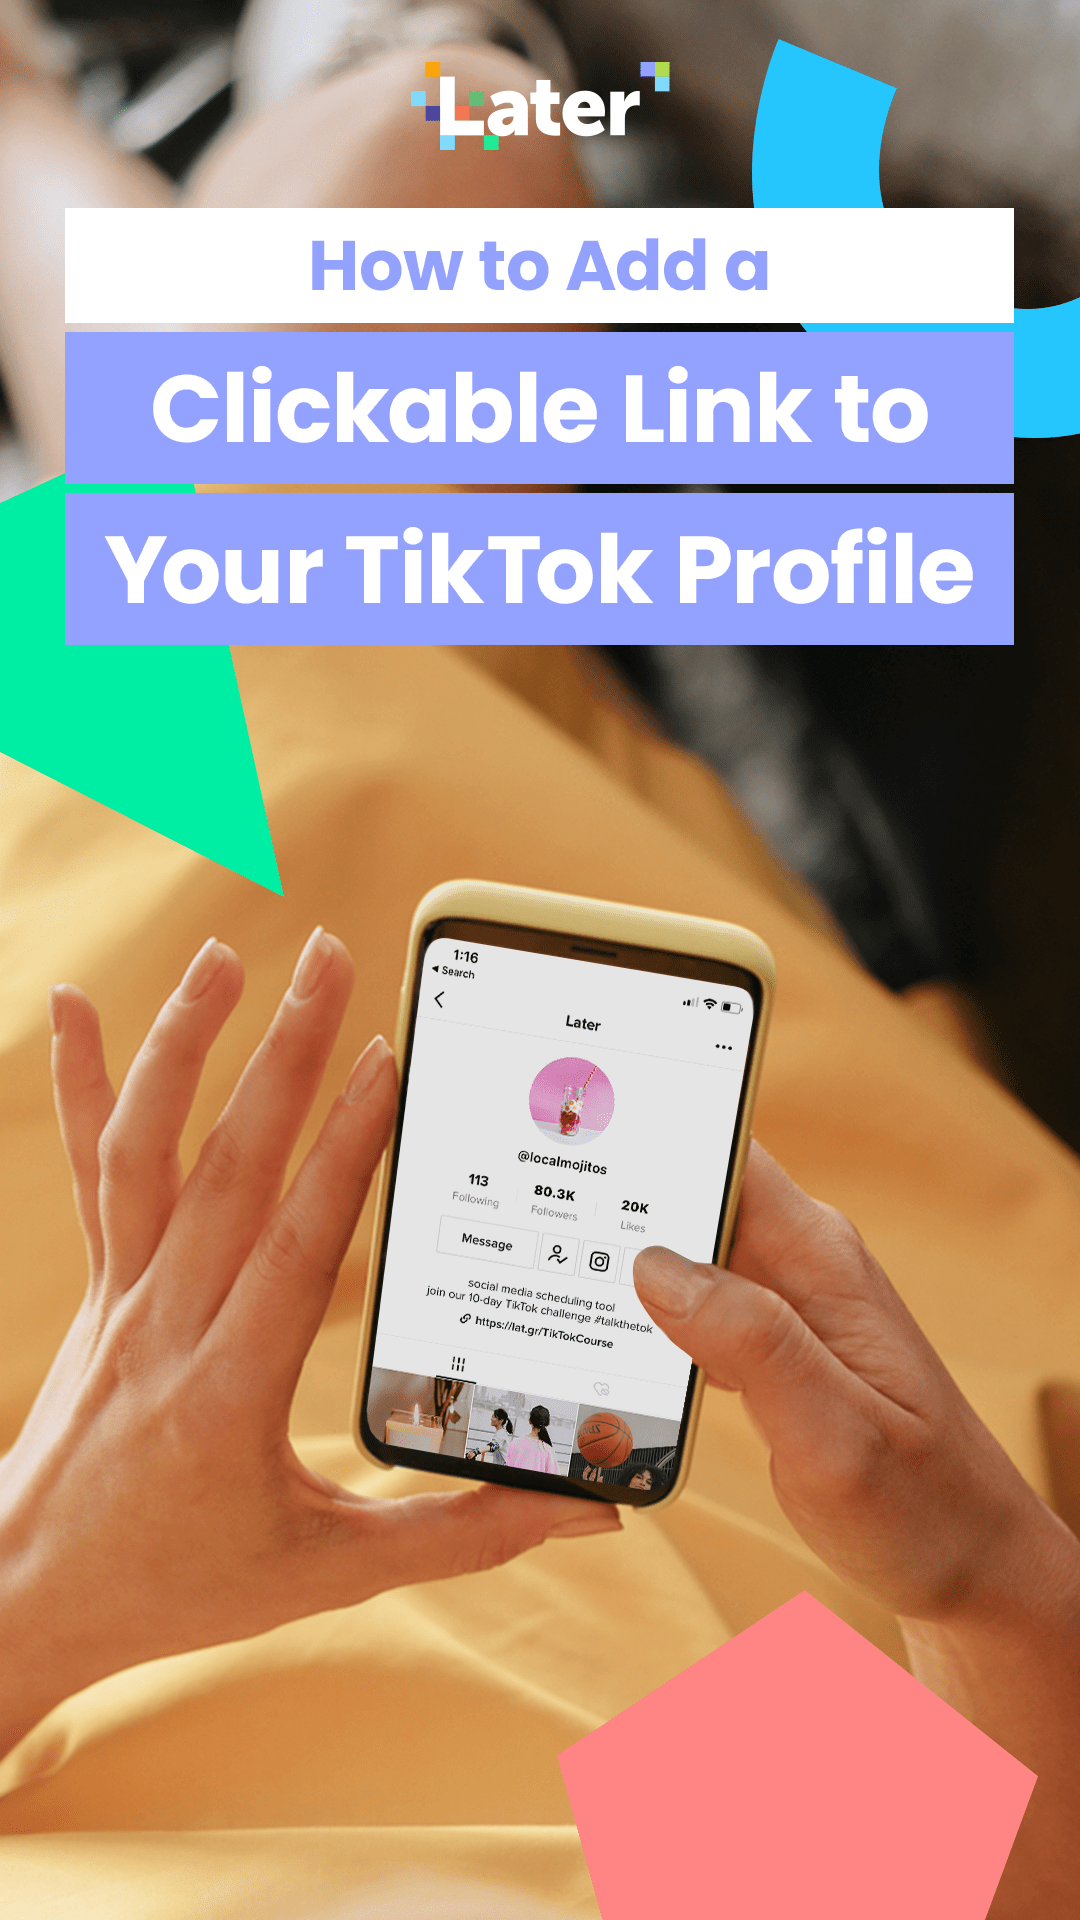 Tiktok Link In Bio How To Get A Clickable Link On Your Profile Social Media Content Strategy Social Media Advice Kids Social Media